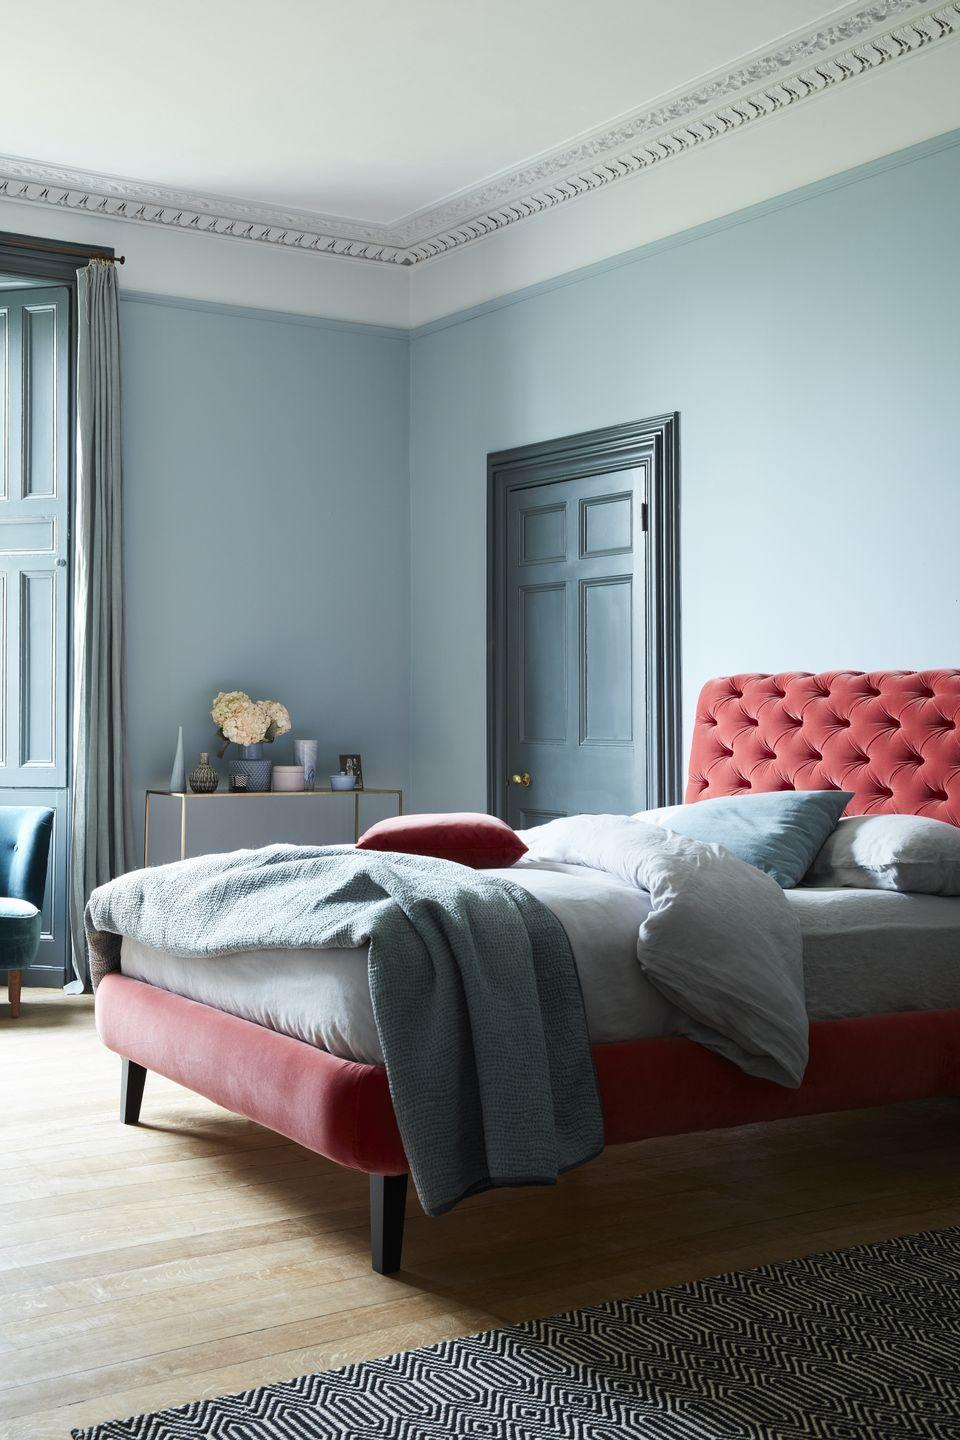 """<p>These are perfectly complementary colours according to the colour wheel. Use a calming blue as your dominant colour – especially in a space like your bedroom or home office – and add a dusty rose as your accent. A third match here would be splashes of buttercup yellow. </p><p>Pictured: <a href=""""https://go.redirectingat.com?id=127X1599956&url=https%3A%2F%2Fwww.sofa.com%2Fgb%2Fbeds%2Fknightsbridge-without-footboard-bed%2Fp%2FBLKNN220CMVDUS&sref=https%3A%2F%2Fwww.countryliving.com%2Fuk%2Fhomes-interiors%2Finteriors%2Fg37384959%2Fcolour-combinations%2F"""" rel=""""nofollow noopener"""" target=""""_blank"""" data-ylk=""""slk:Knightsbridge Double Bed In Dusty Rose Velvet at Sofa.com"""" class=""""link rapid-noclick-resp"""">Knightsbridge Double Bed In Dusty Rose Velvet at Sofa.com</a></p>"""